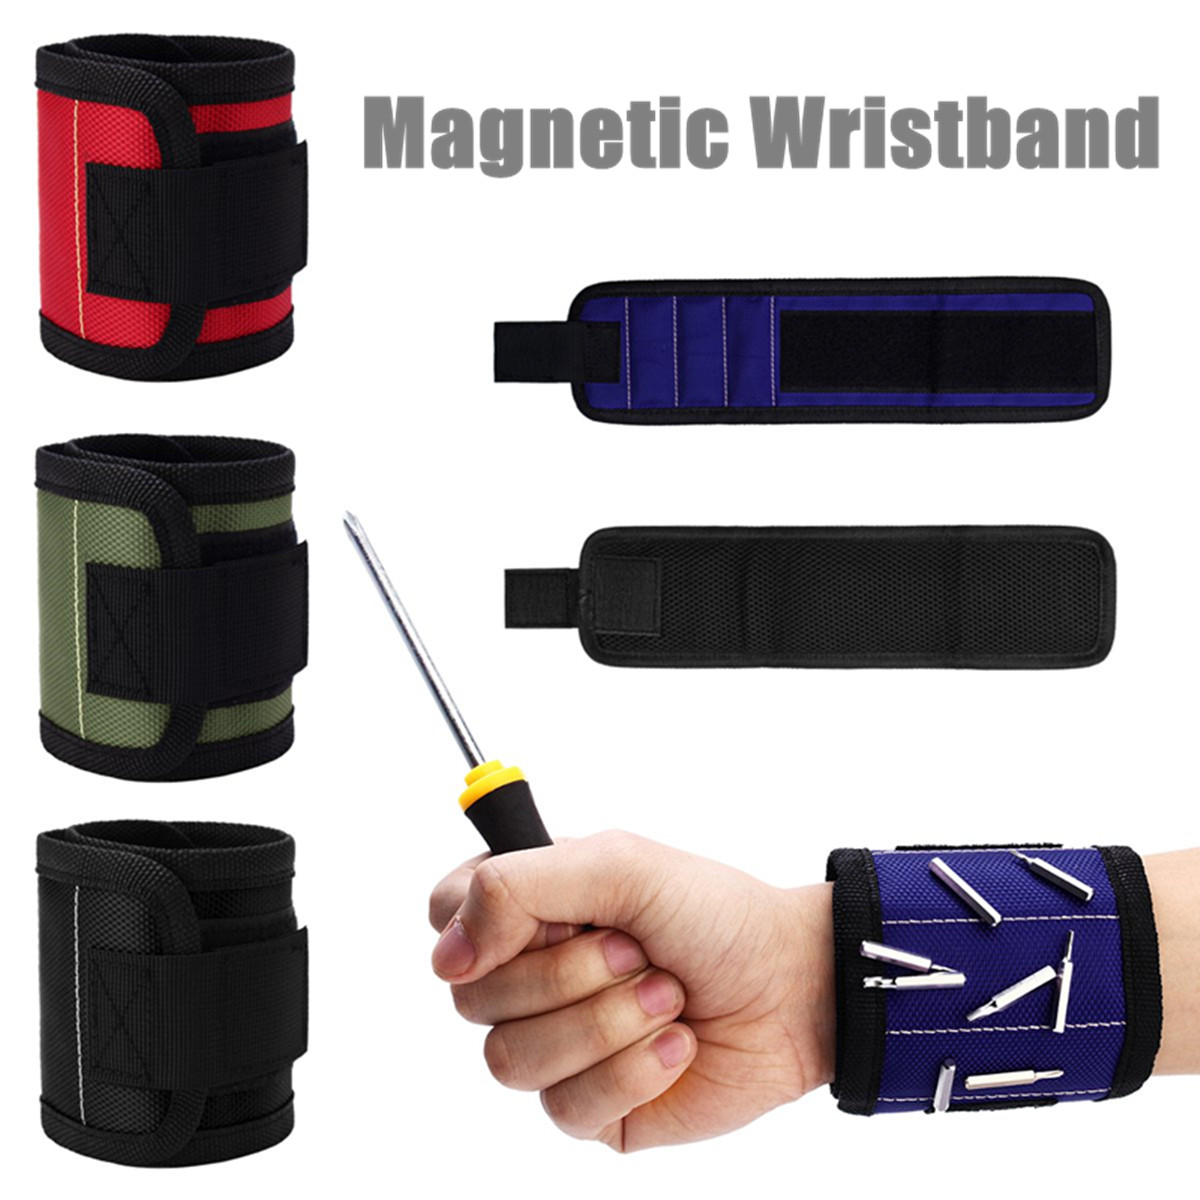 Magnetic Wristband Portable Tool Bag Electrician Wrist Tool Belt Screws Nails Drill Bits Bracelet Repair Tool Holder Organizers